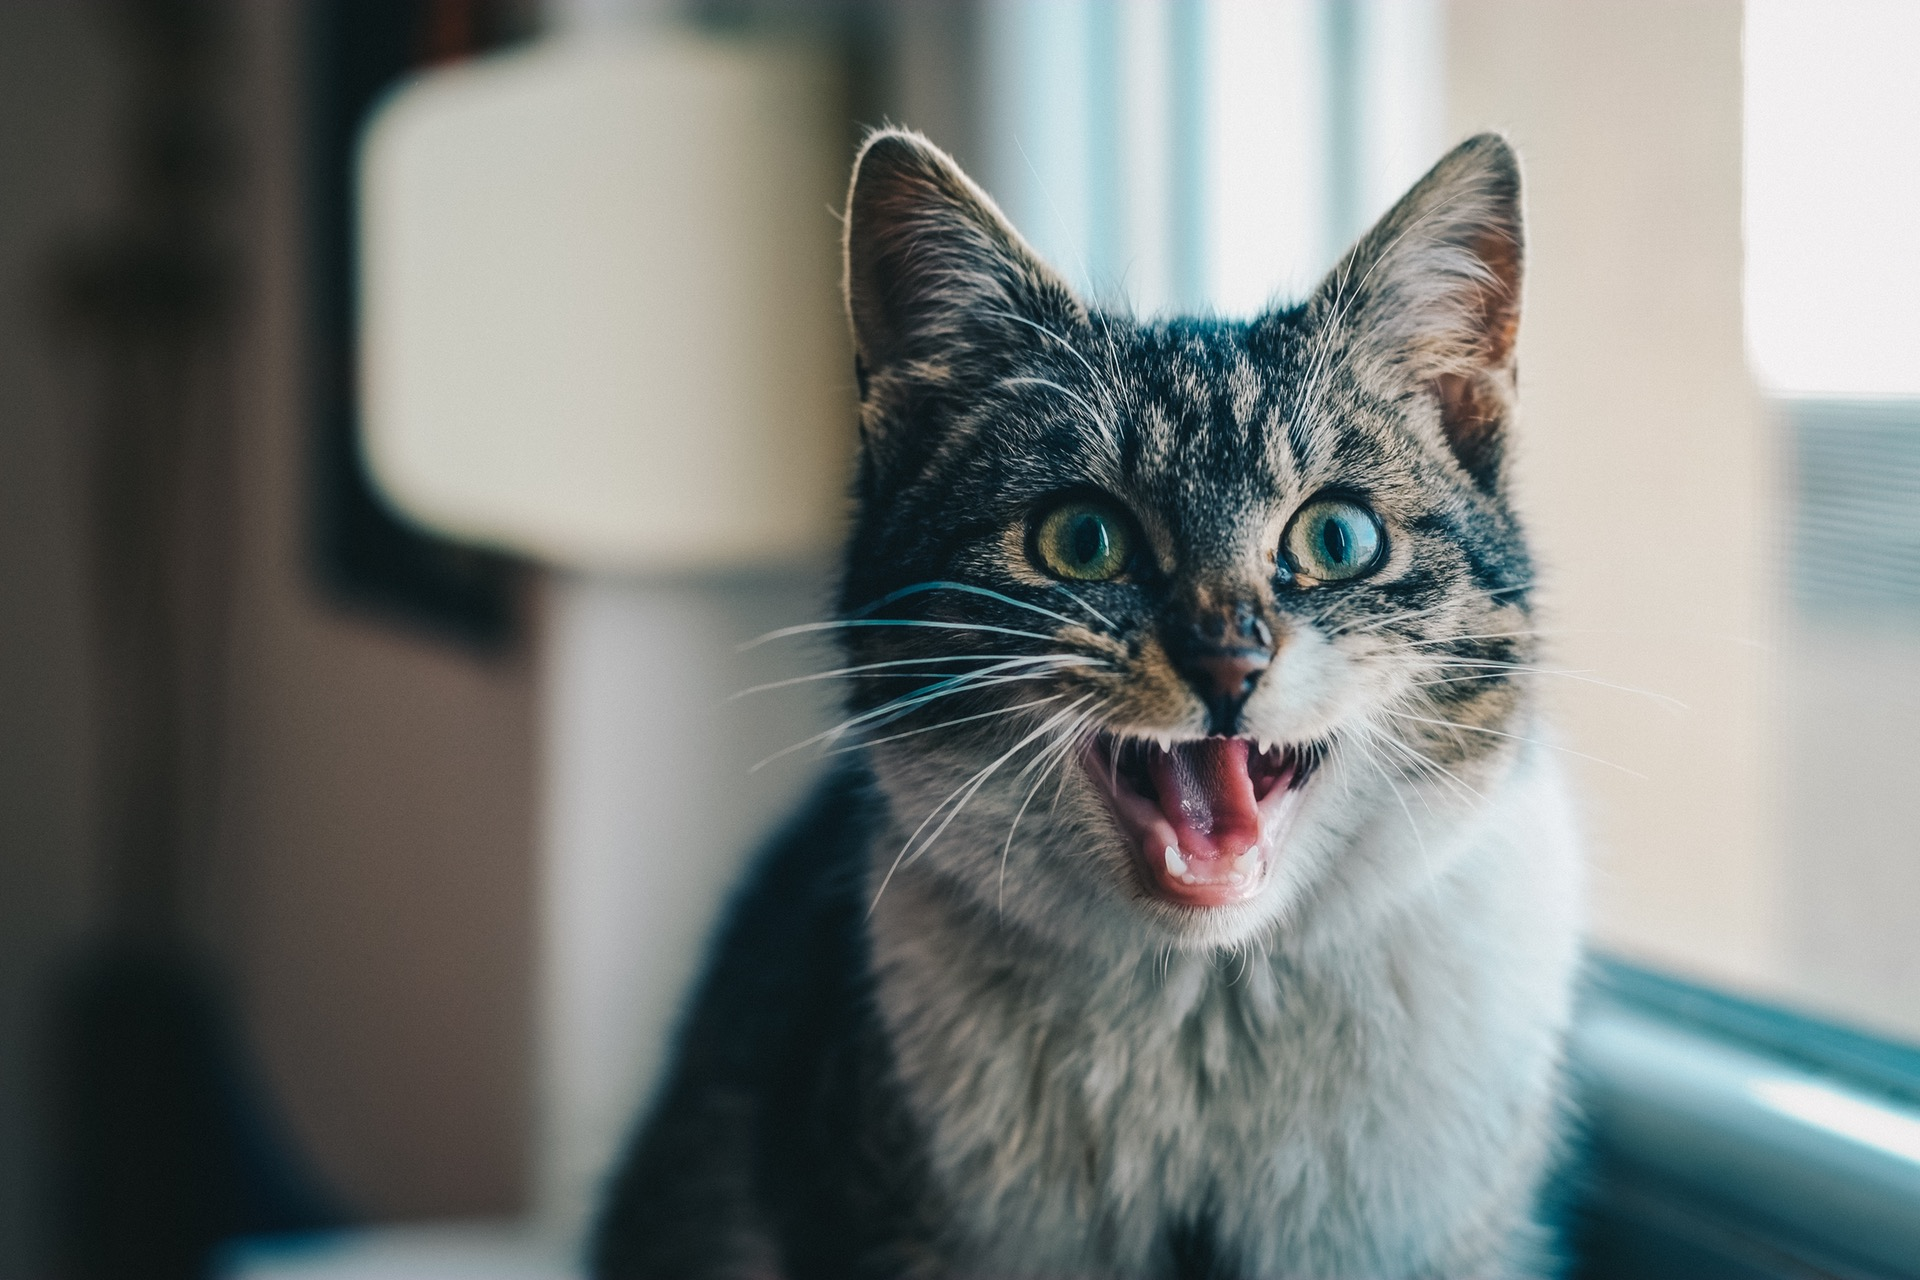 A picture of a cat to highlight that Toryn didn't become a cat lady as she feared when she told her father about being trans in her article about sex